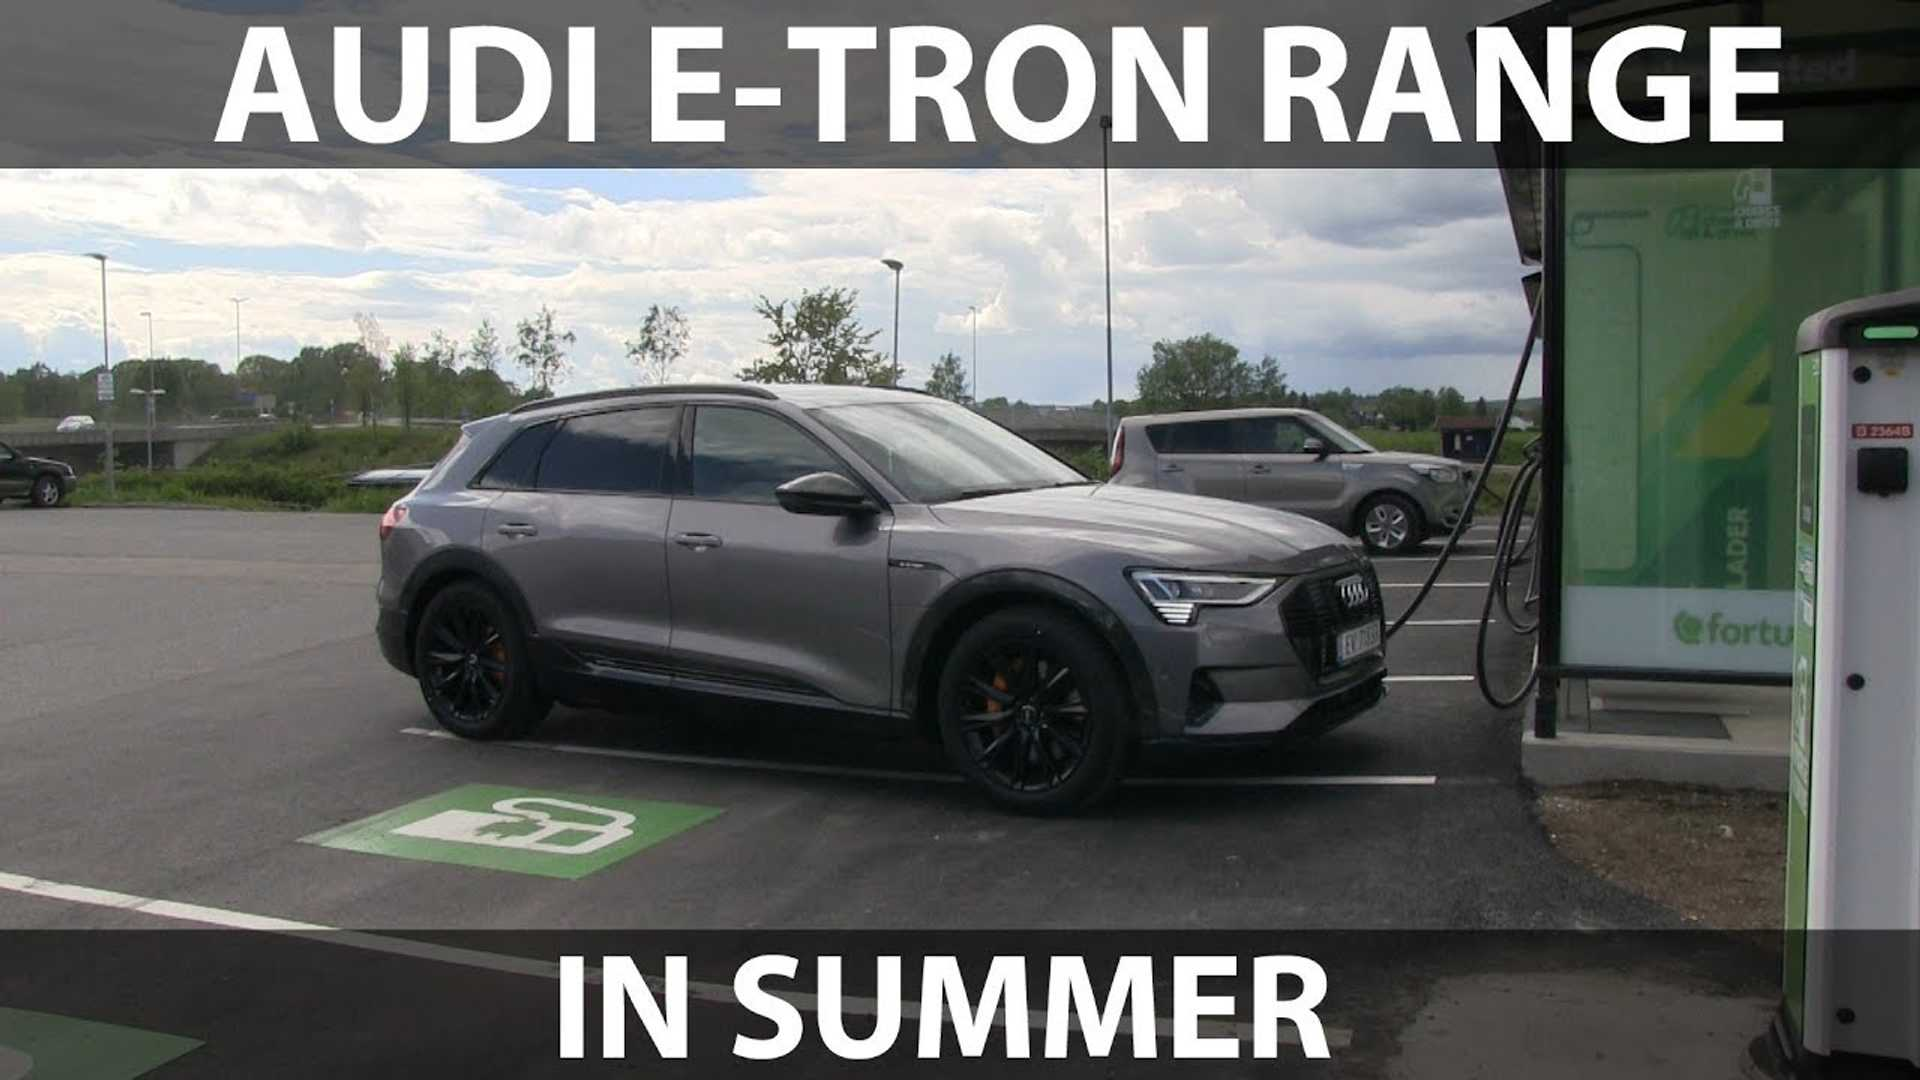 Audi e-tron Summer Range Test Proves Its Thirsty Nature: Video